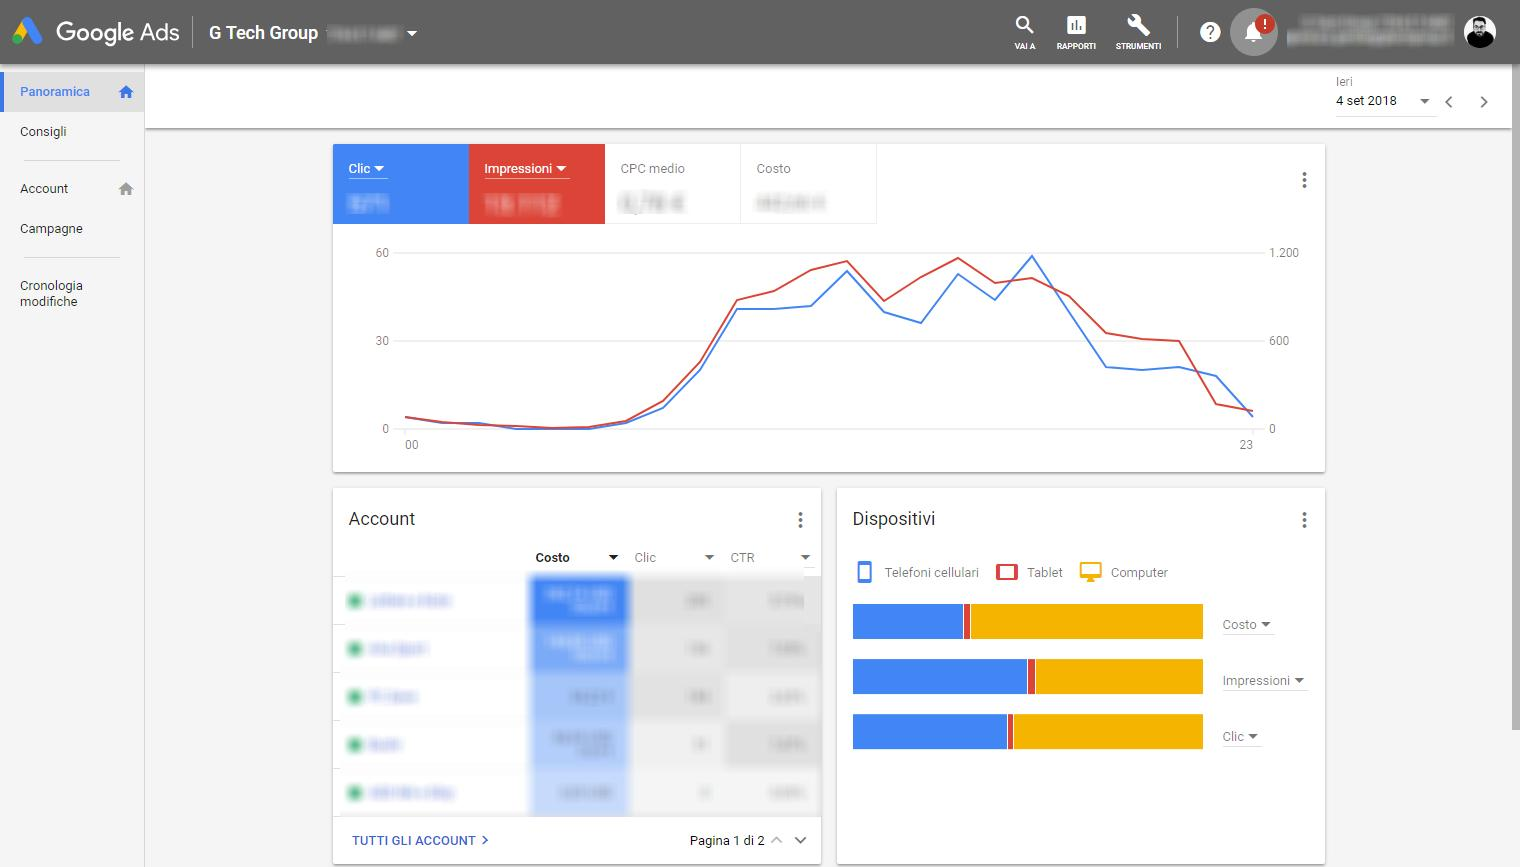 Nuova interfaccia Google Adwords nuova interfaccia google adwords - Nuova Interfaccia Google ADS - Nuova interfaccia Google Adwords diventa Google Ads